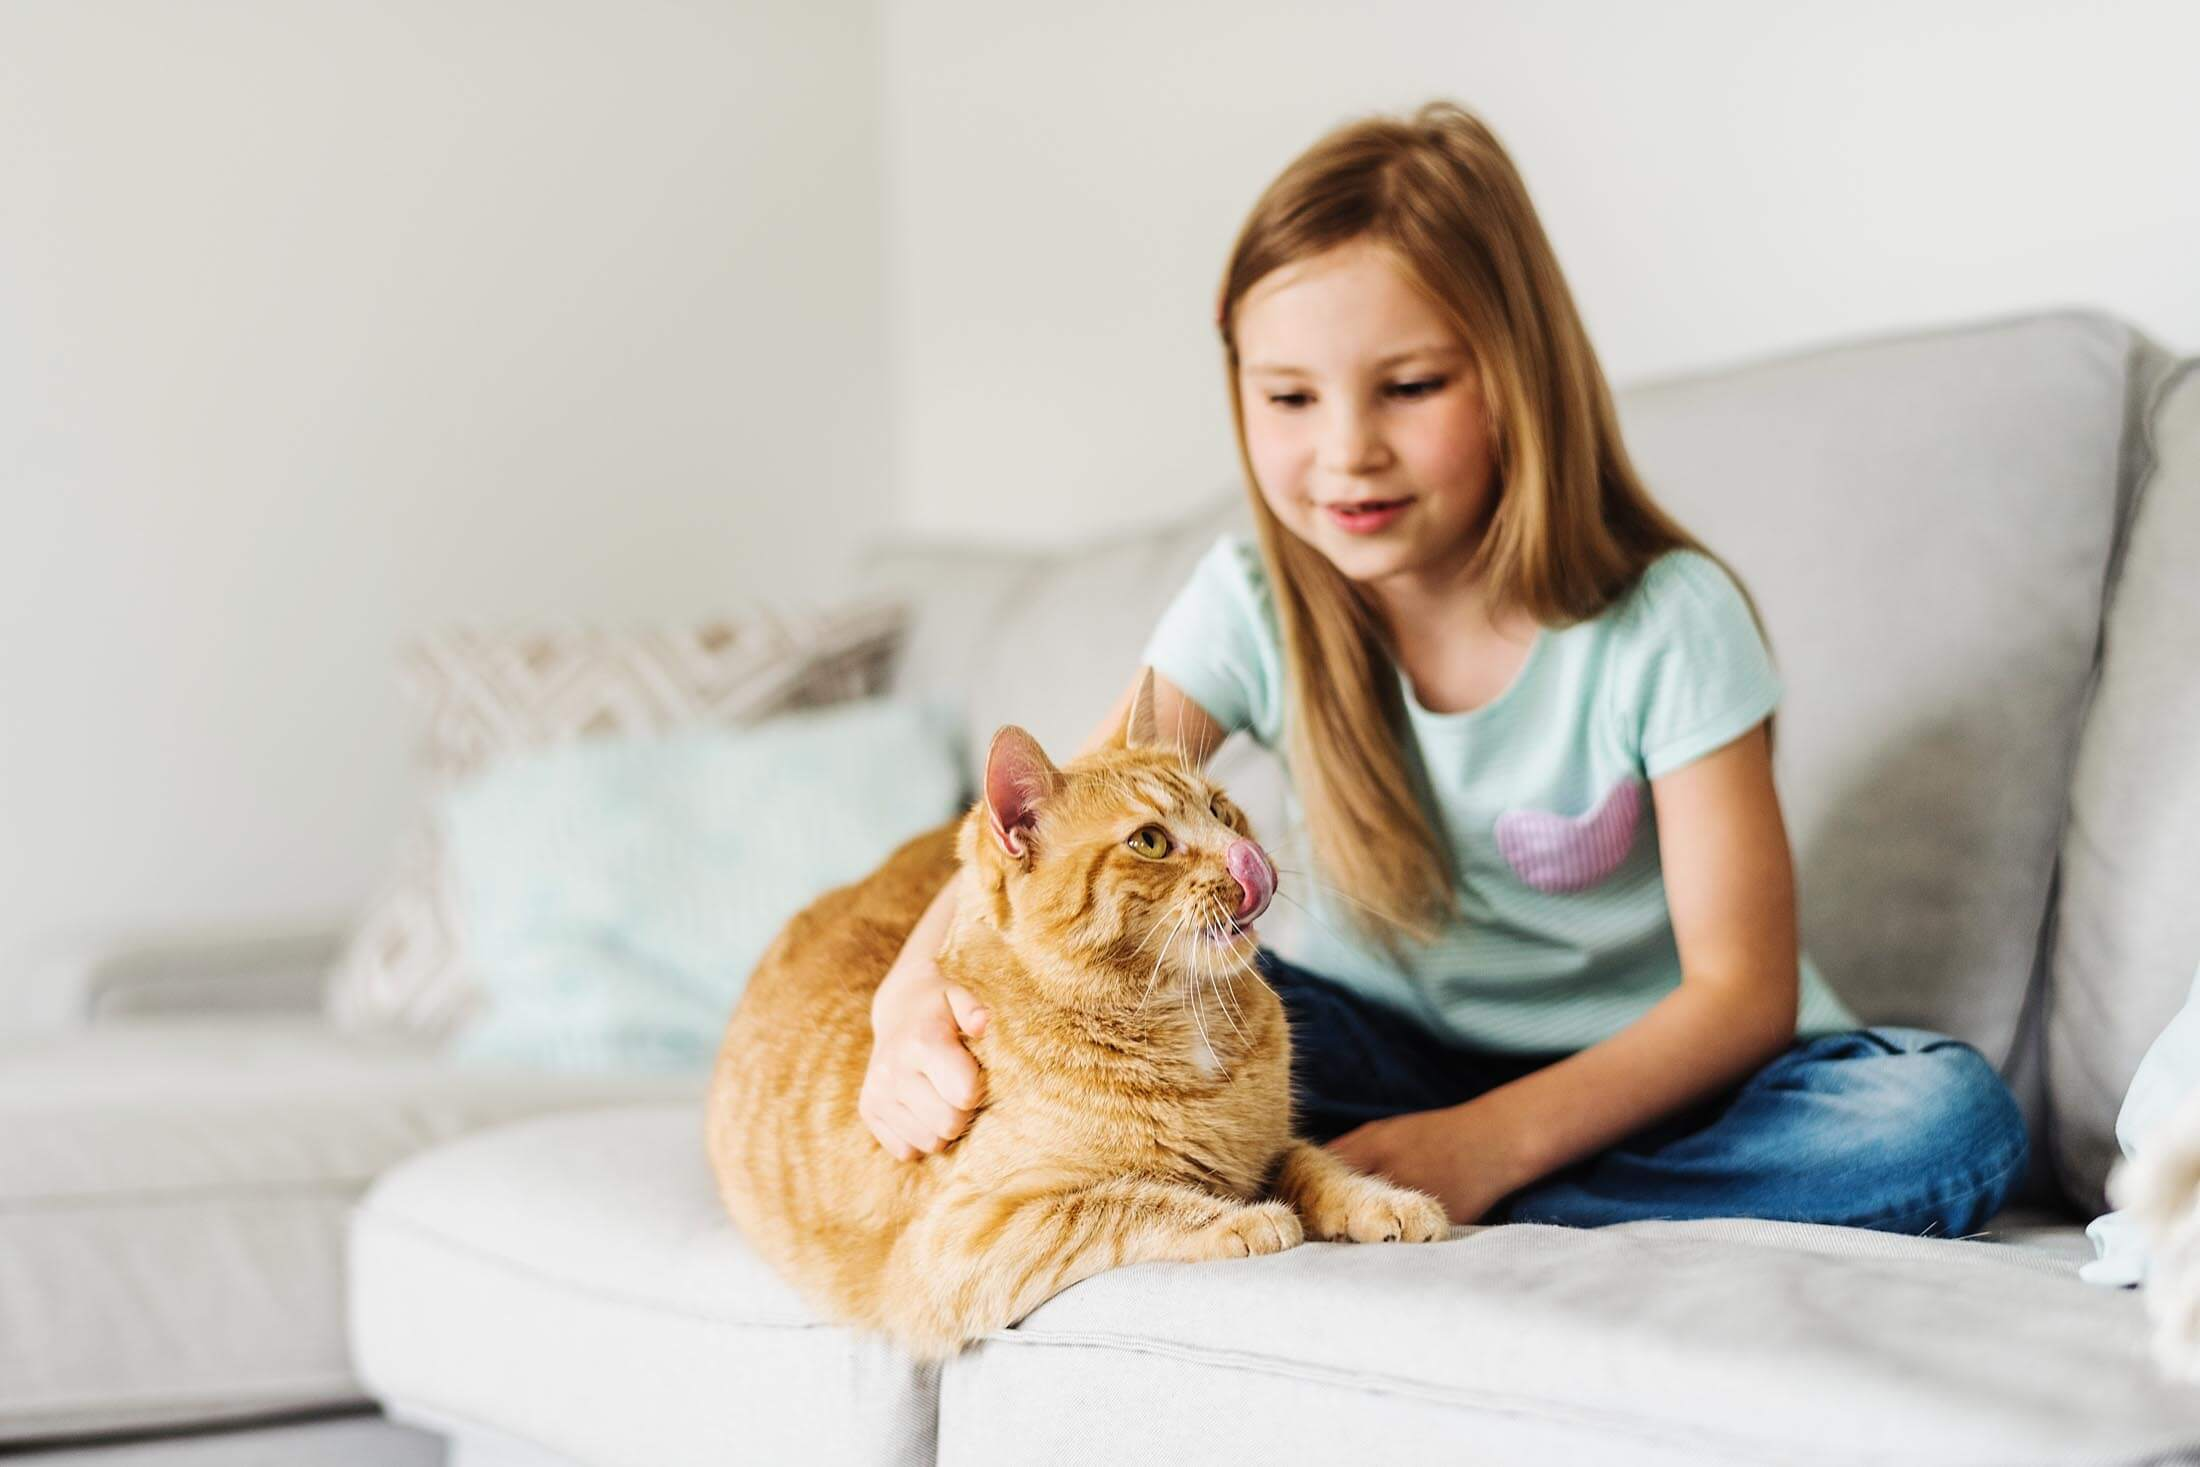 Little girl pet orange cat on the couch